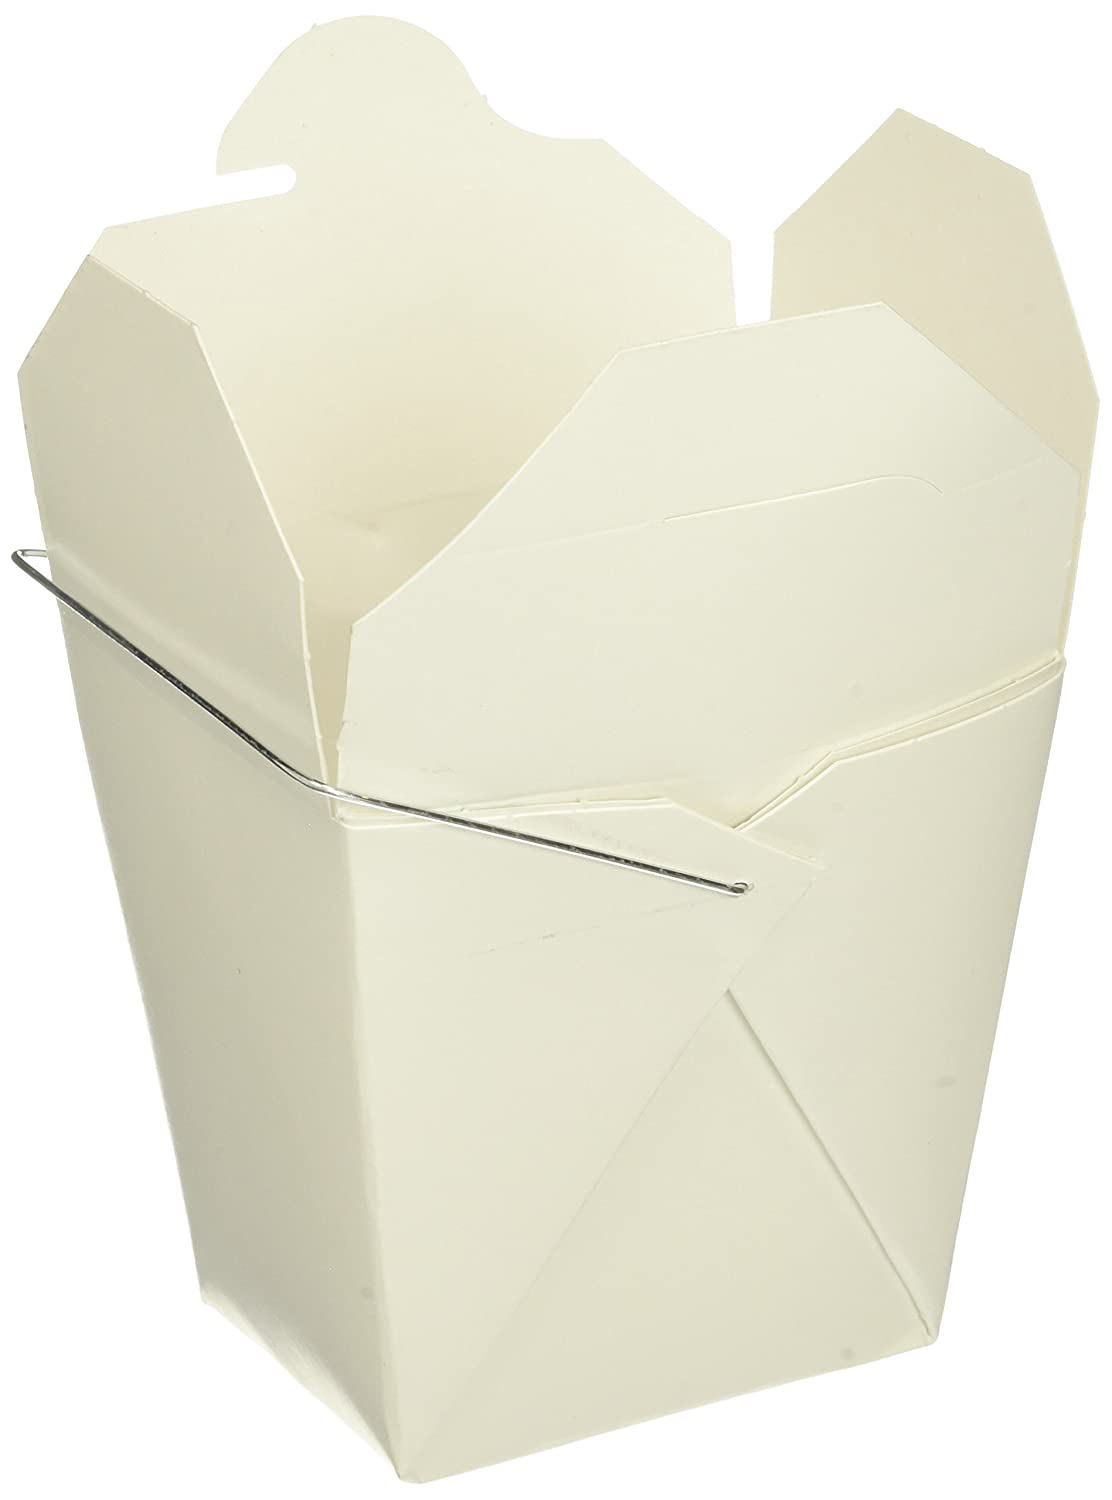 Amazon.com: Chinese Take Out Food Boxes: 16 oz. (1 Pint) Lot Of 50 ...